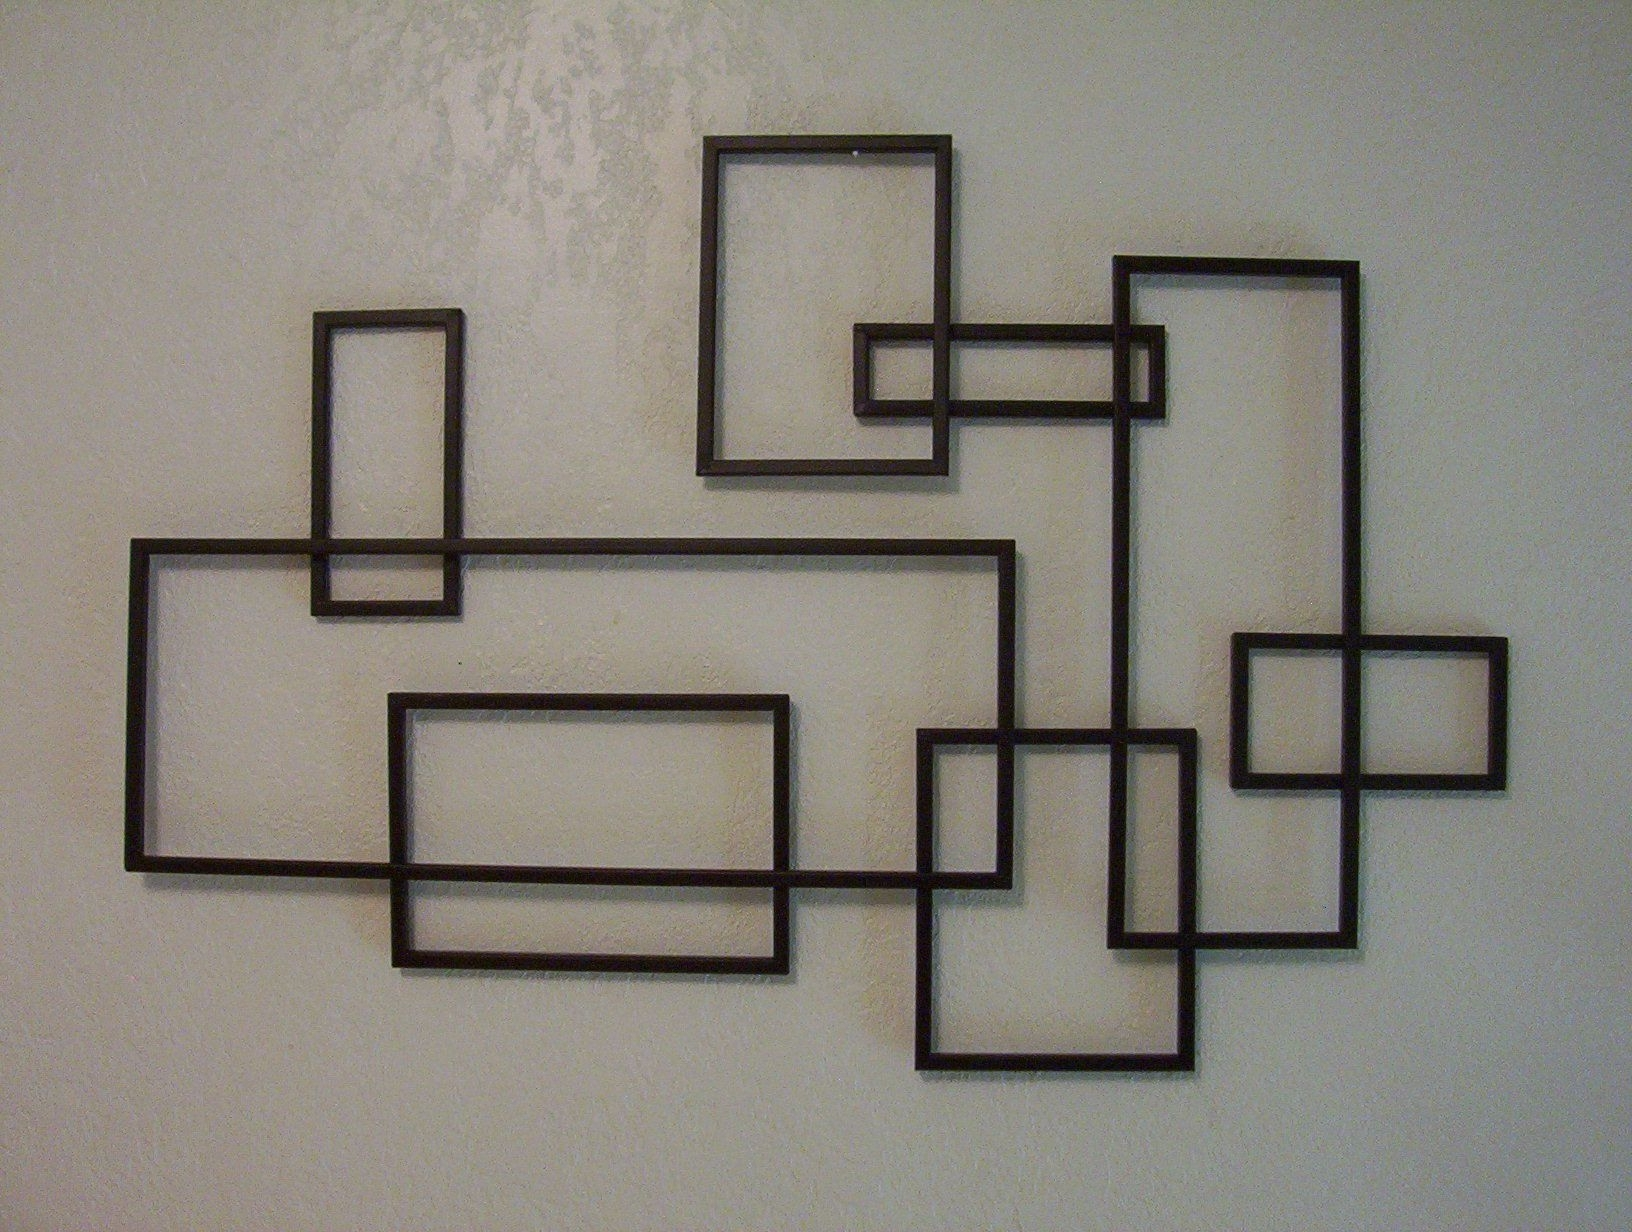 Best And Newest Geometric Modern Metal Abstract Wall Art Inside Mid Century Modern ~ De Stijl Style Geometric Metal Wall Sculpture (View 2 of 15)